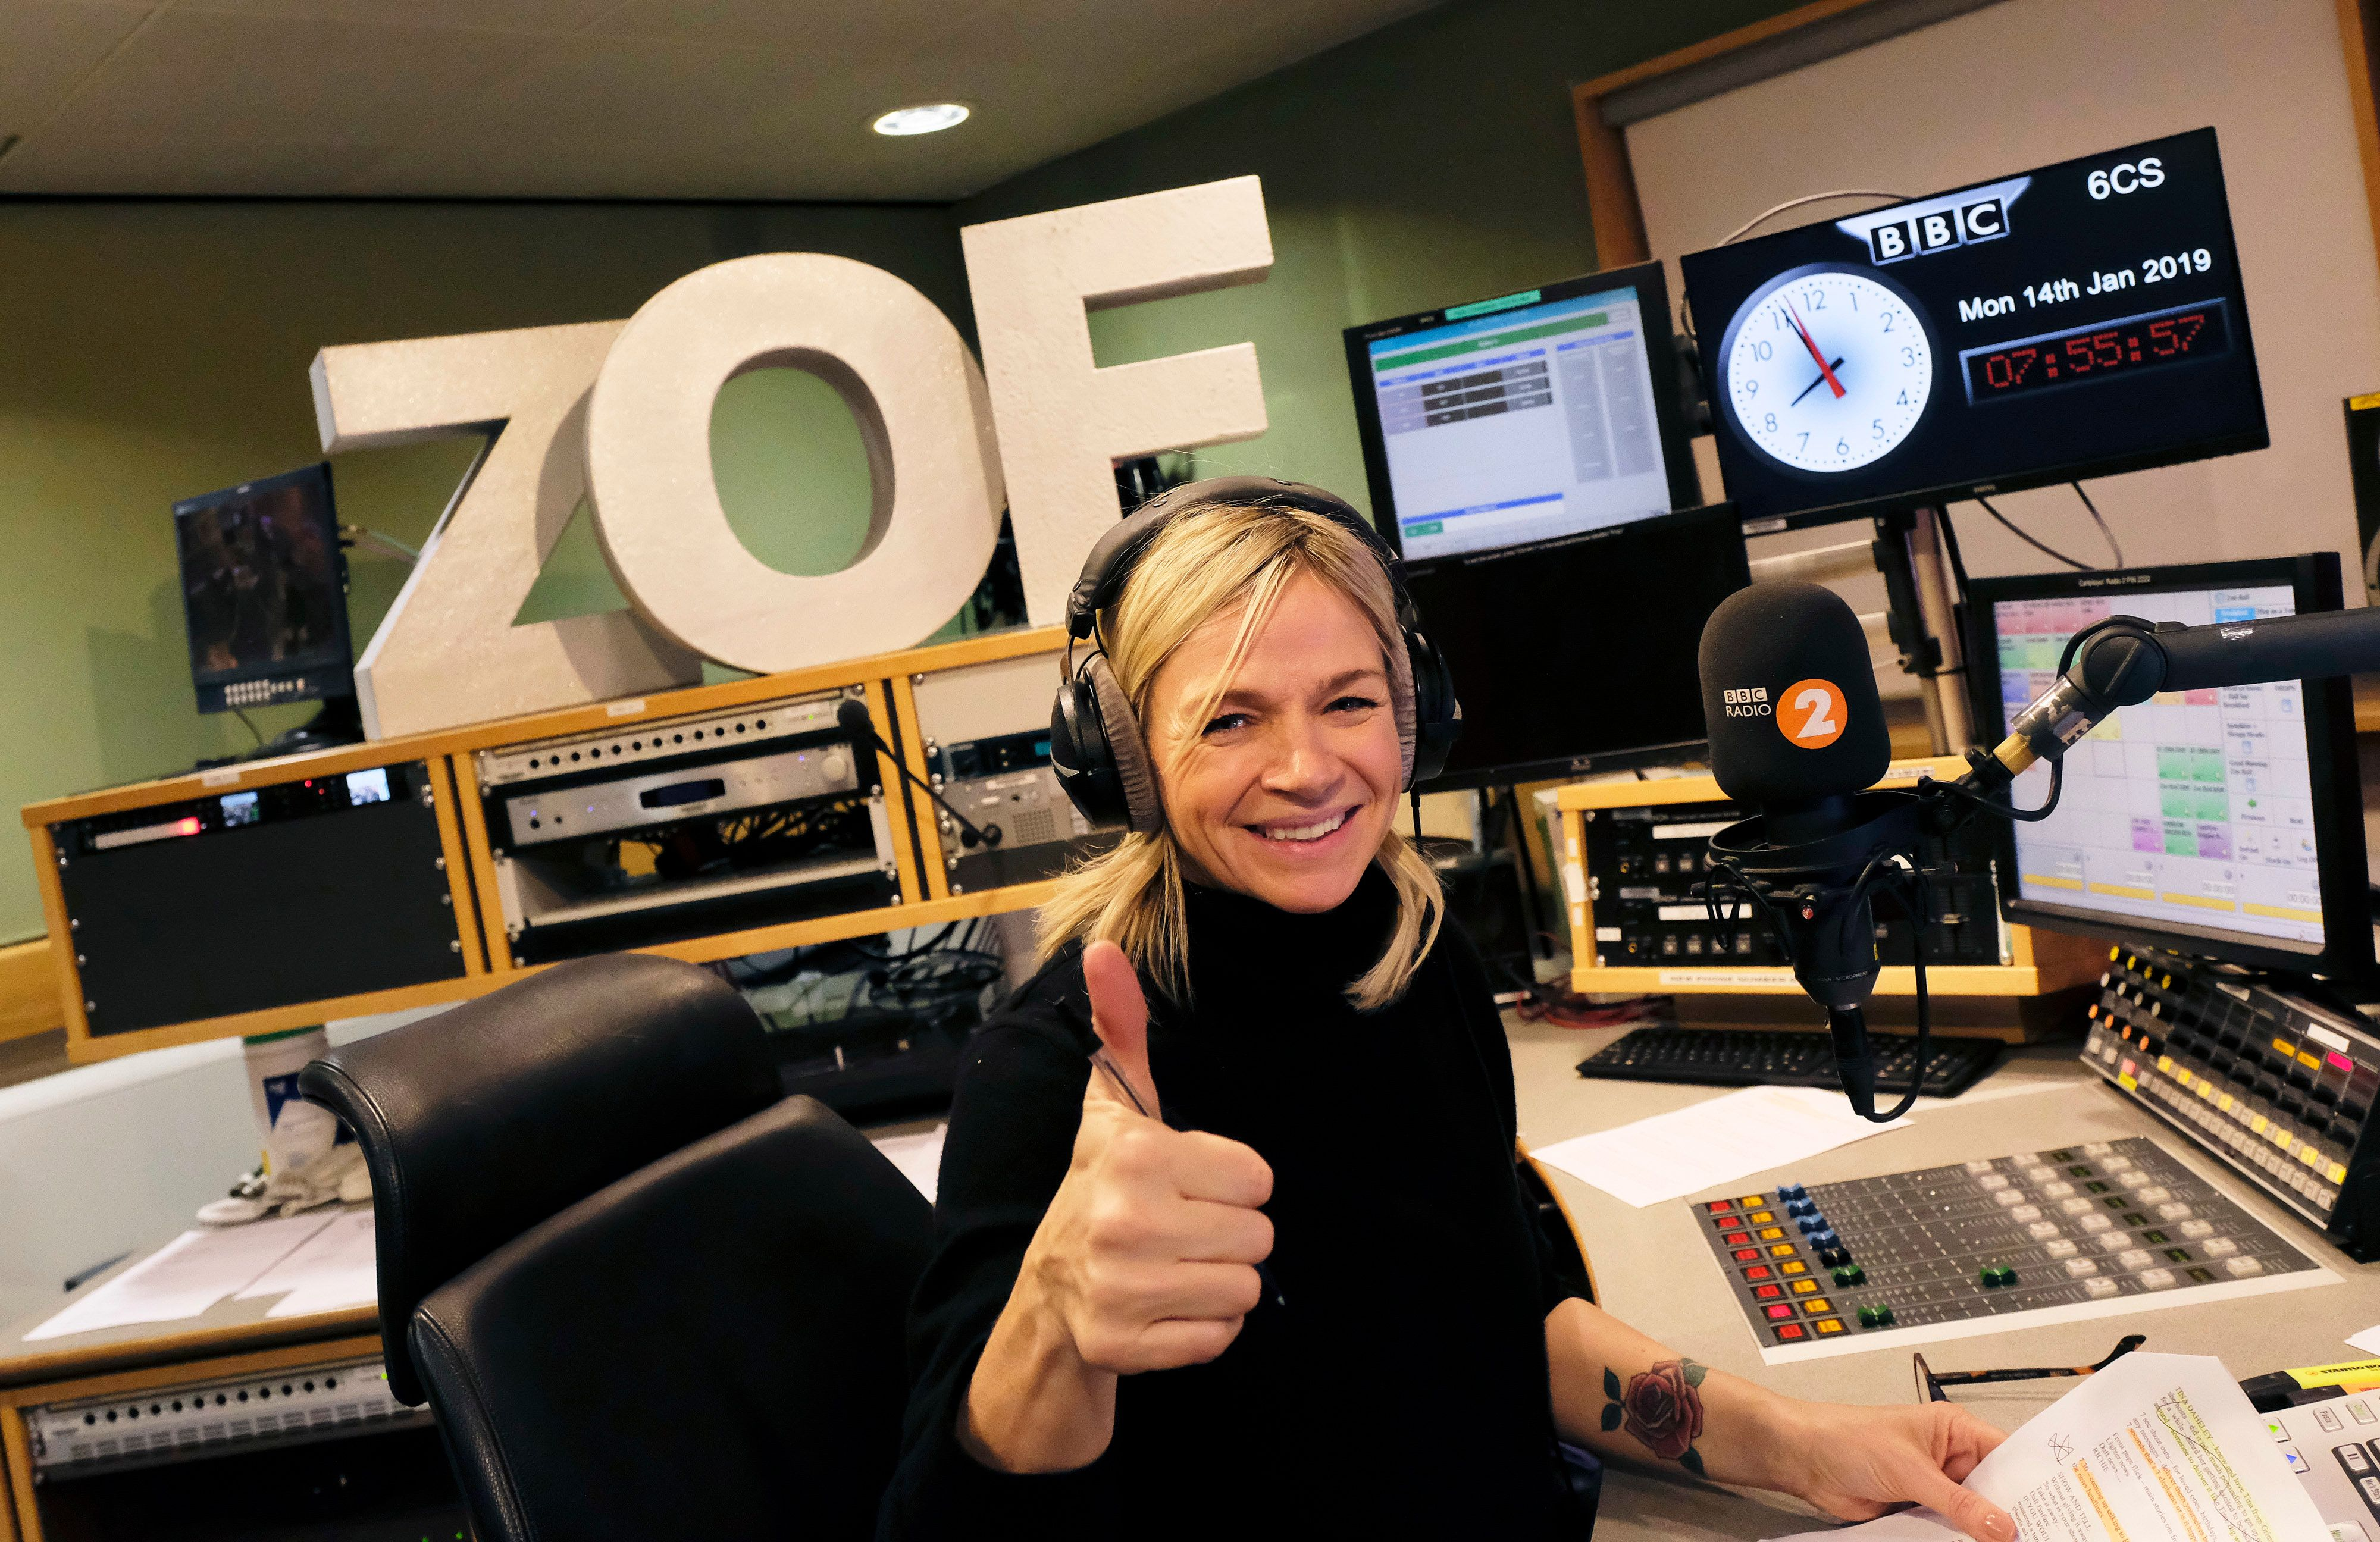 Zoe Ball Gets The Thumbs Up From Radio 2 Listeners As She Makes Breakfast Show